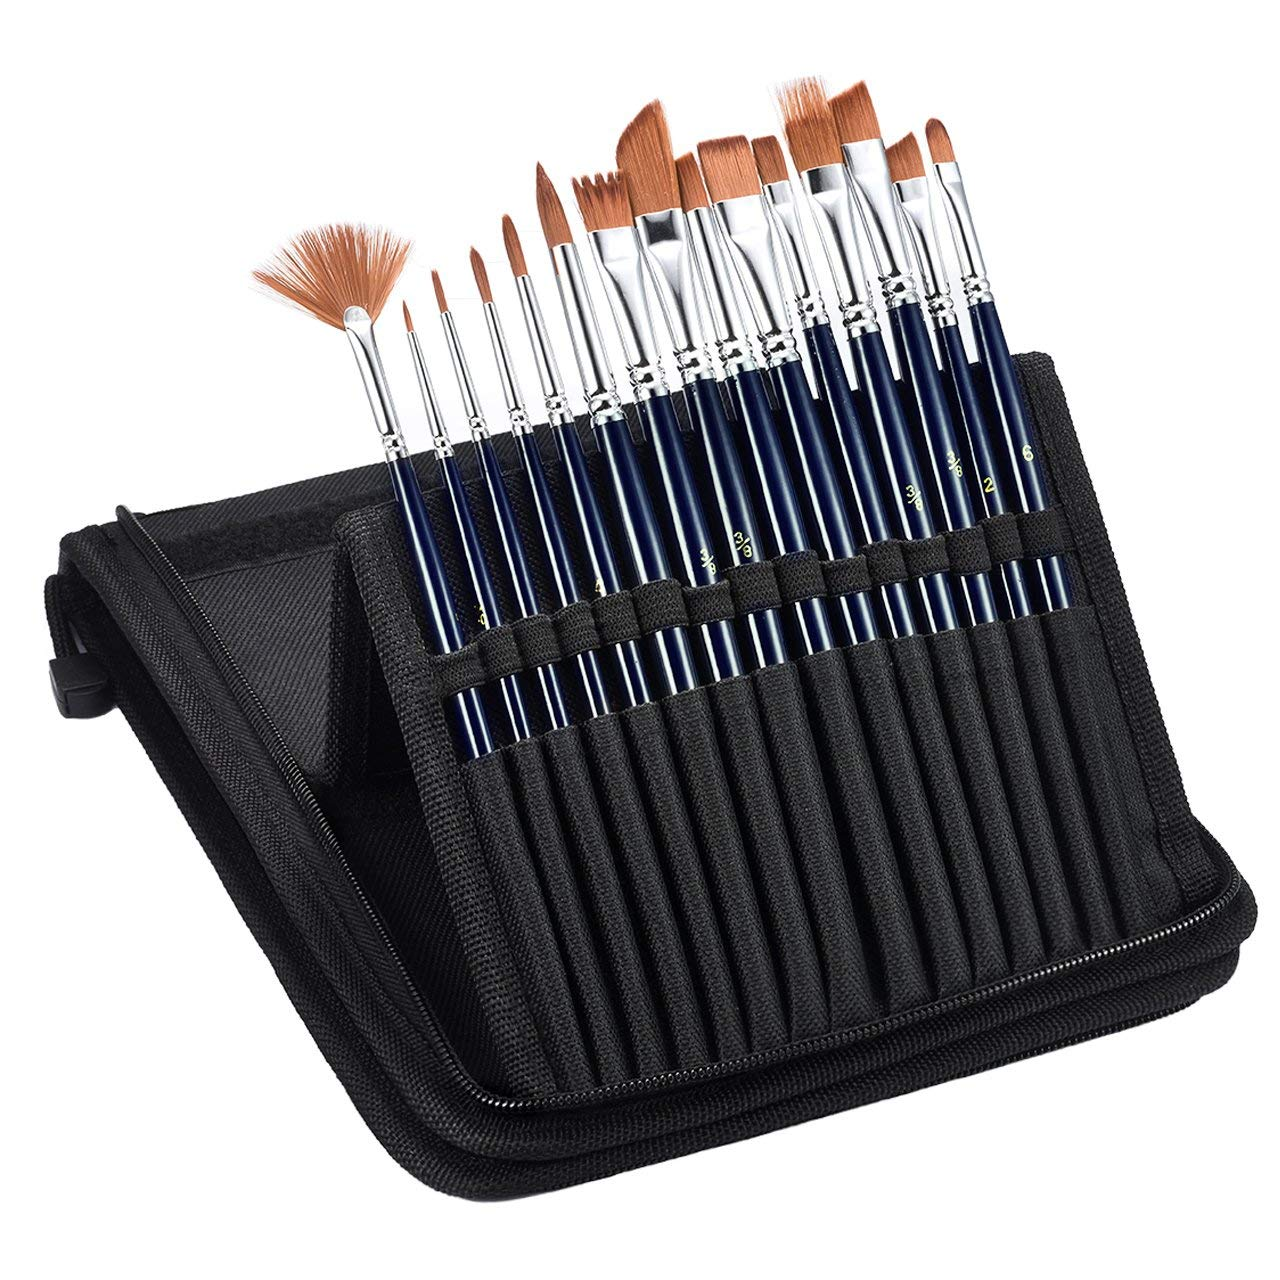 19 Pcs Paint Brushes Set, Atmoko Nylon Hair Paint Brush, with Tray Palette, Palette Knife, Line Drawing Pen, Nylon Leather Storage Bag, for Watercolor, Acrylic & Oil Painting, Painting Ceramic